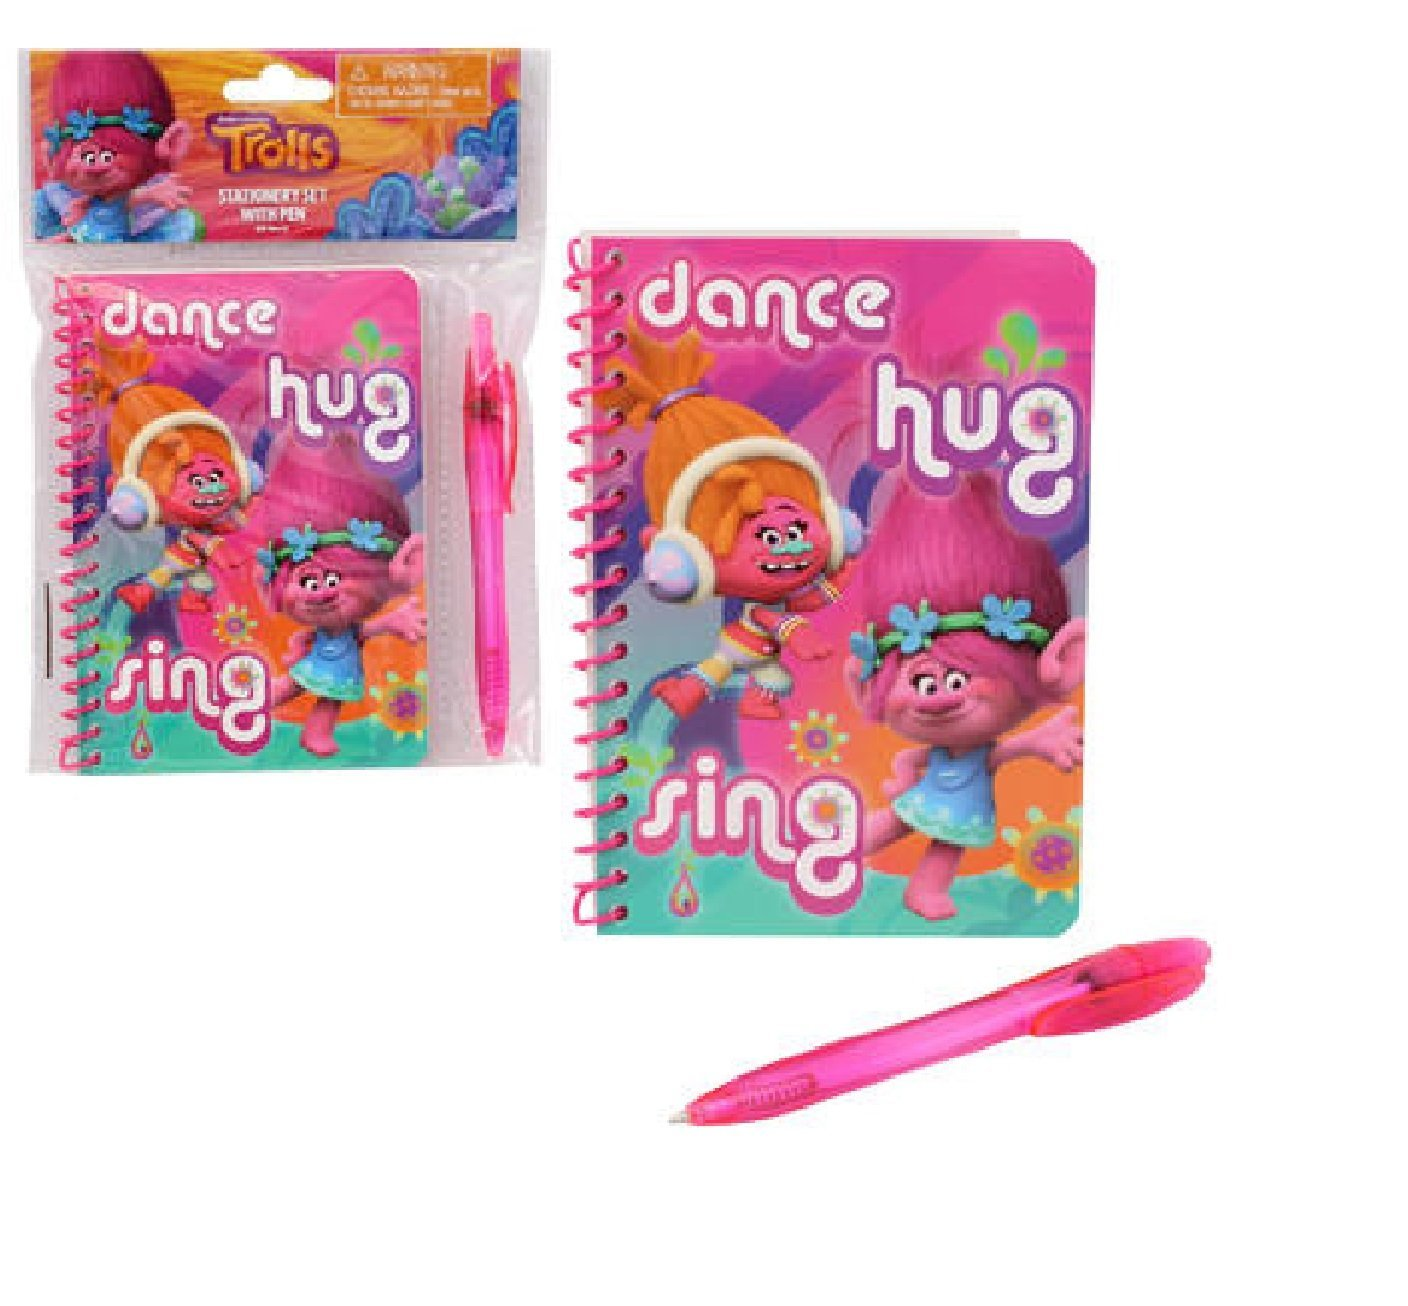 Dreamworks Trolls Stationery Set with Pen features a hot pink cover